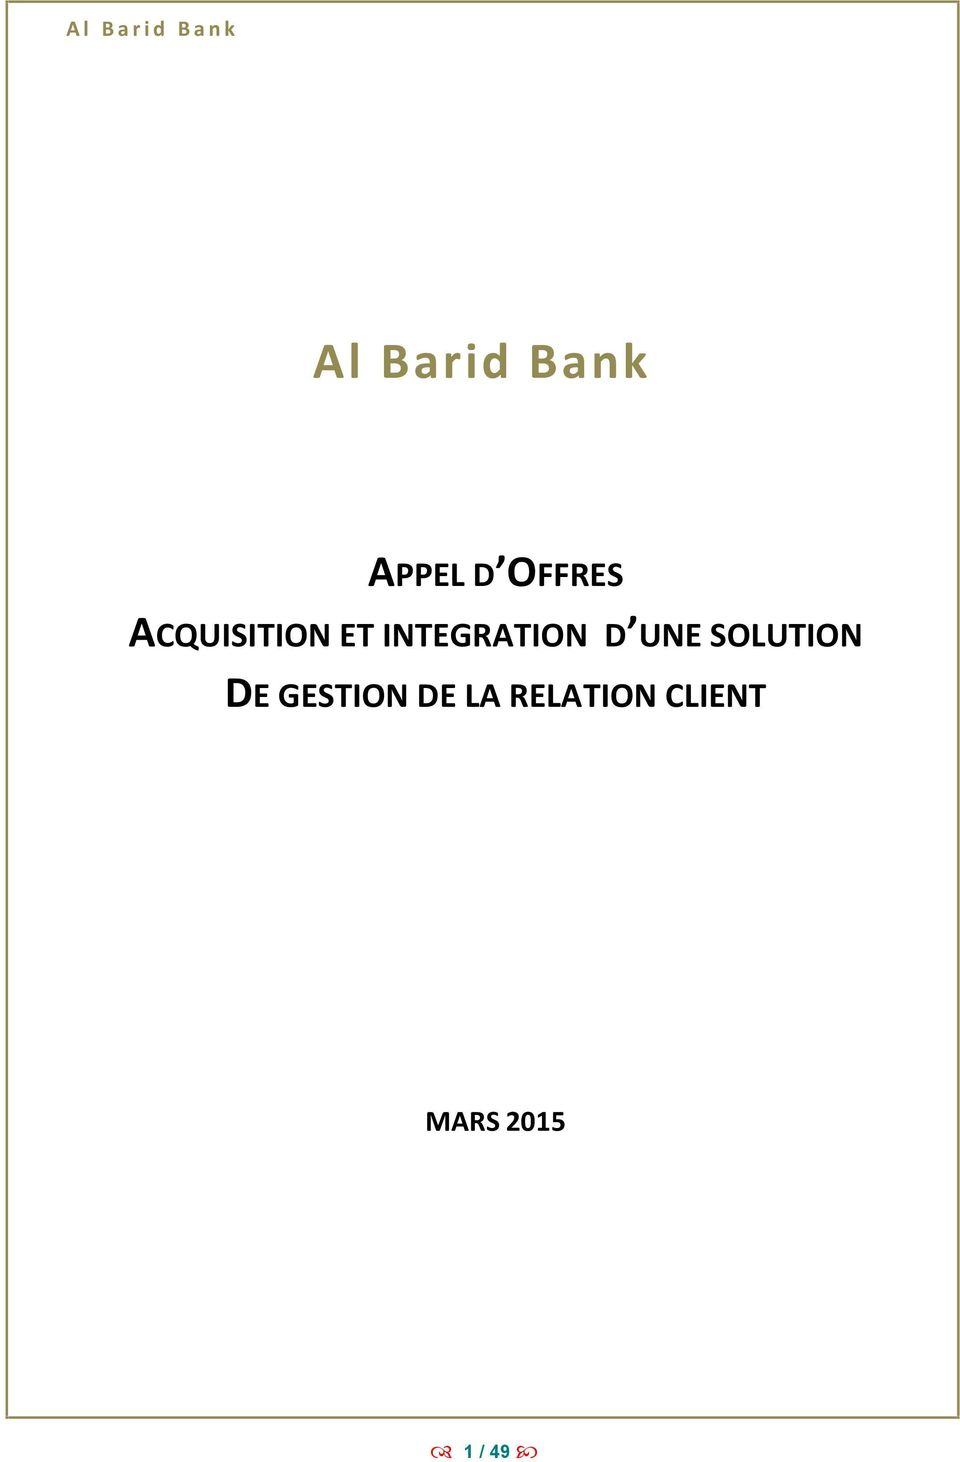 UNE SOLUTION DE GESTION DE LA